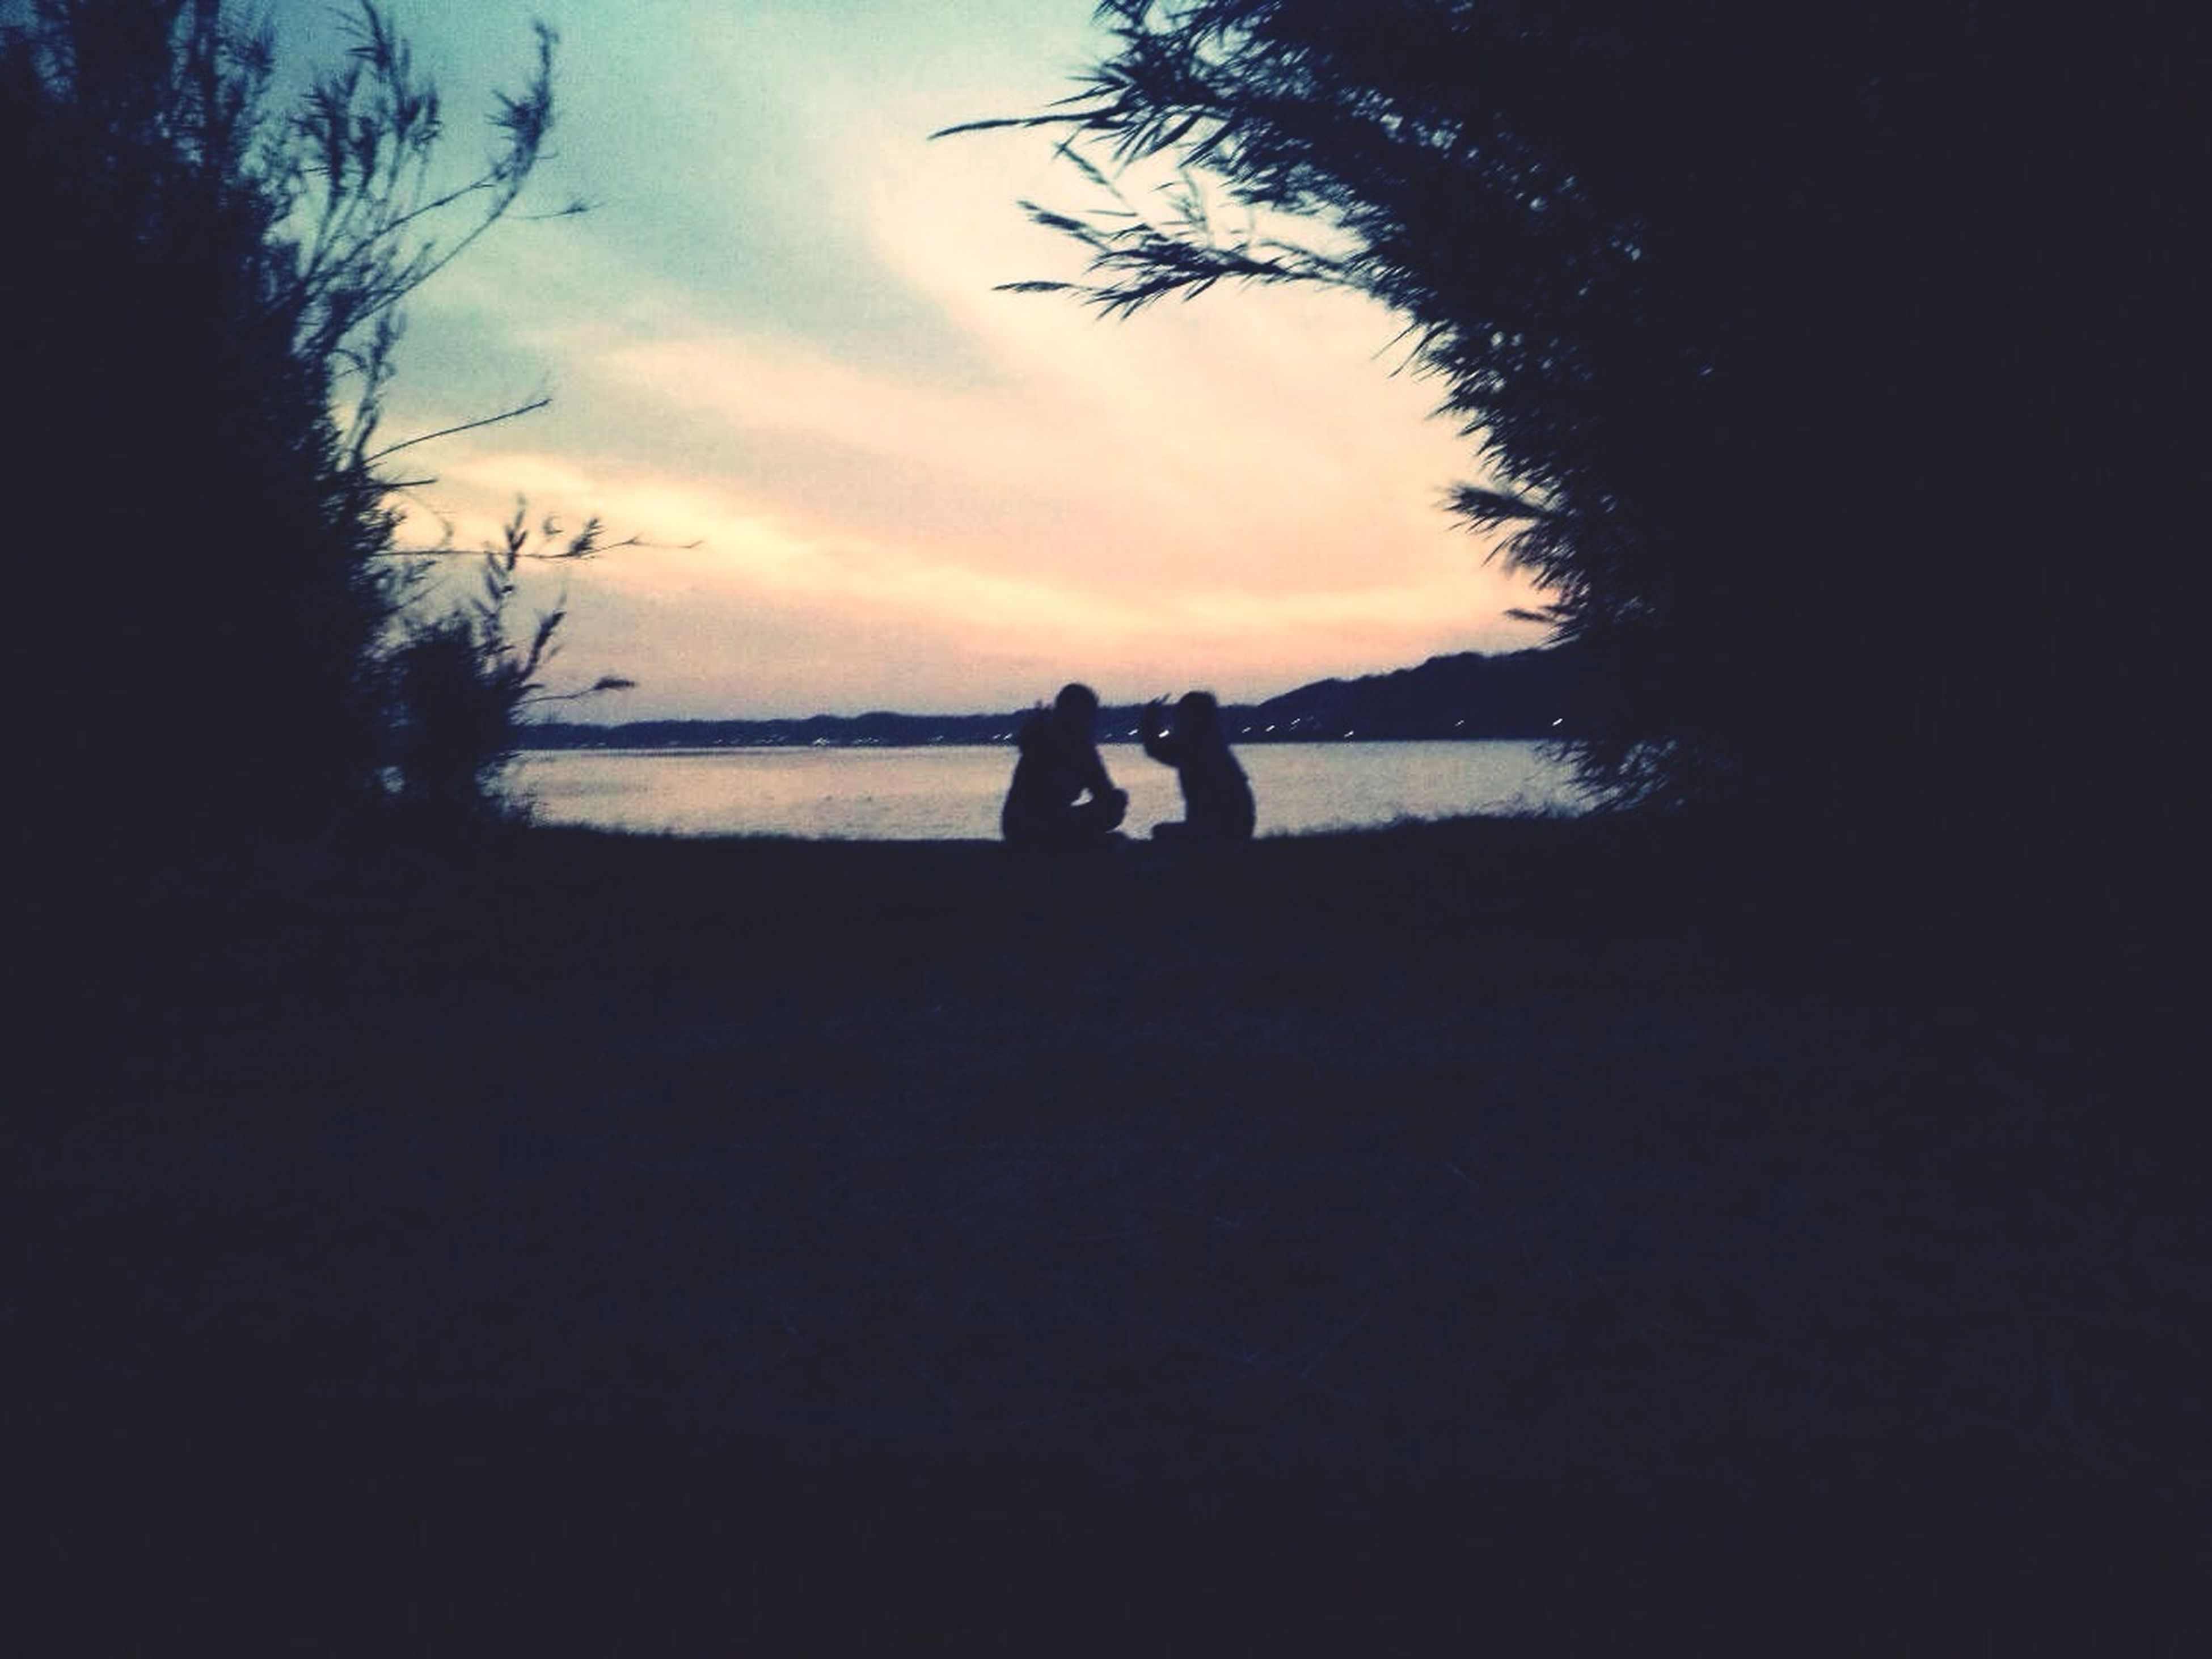 silhouette, sky, leisure activity, sunset, lifestyles, tranquil scene, tranquility, tree, men, scenics, water, beauty in nature, togetherness, nature, cloud - sky, beach, sea, person